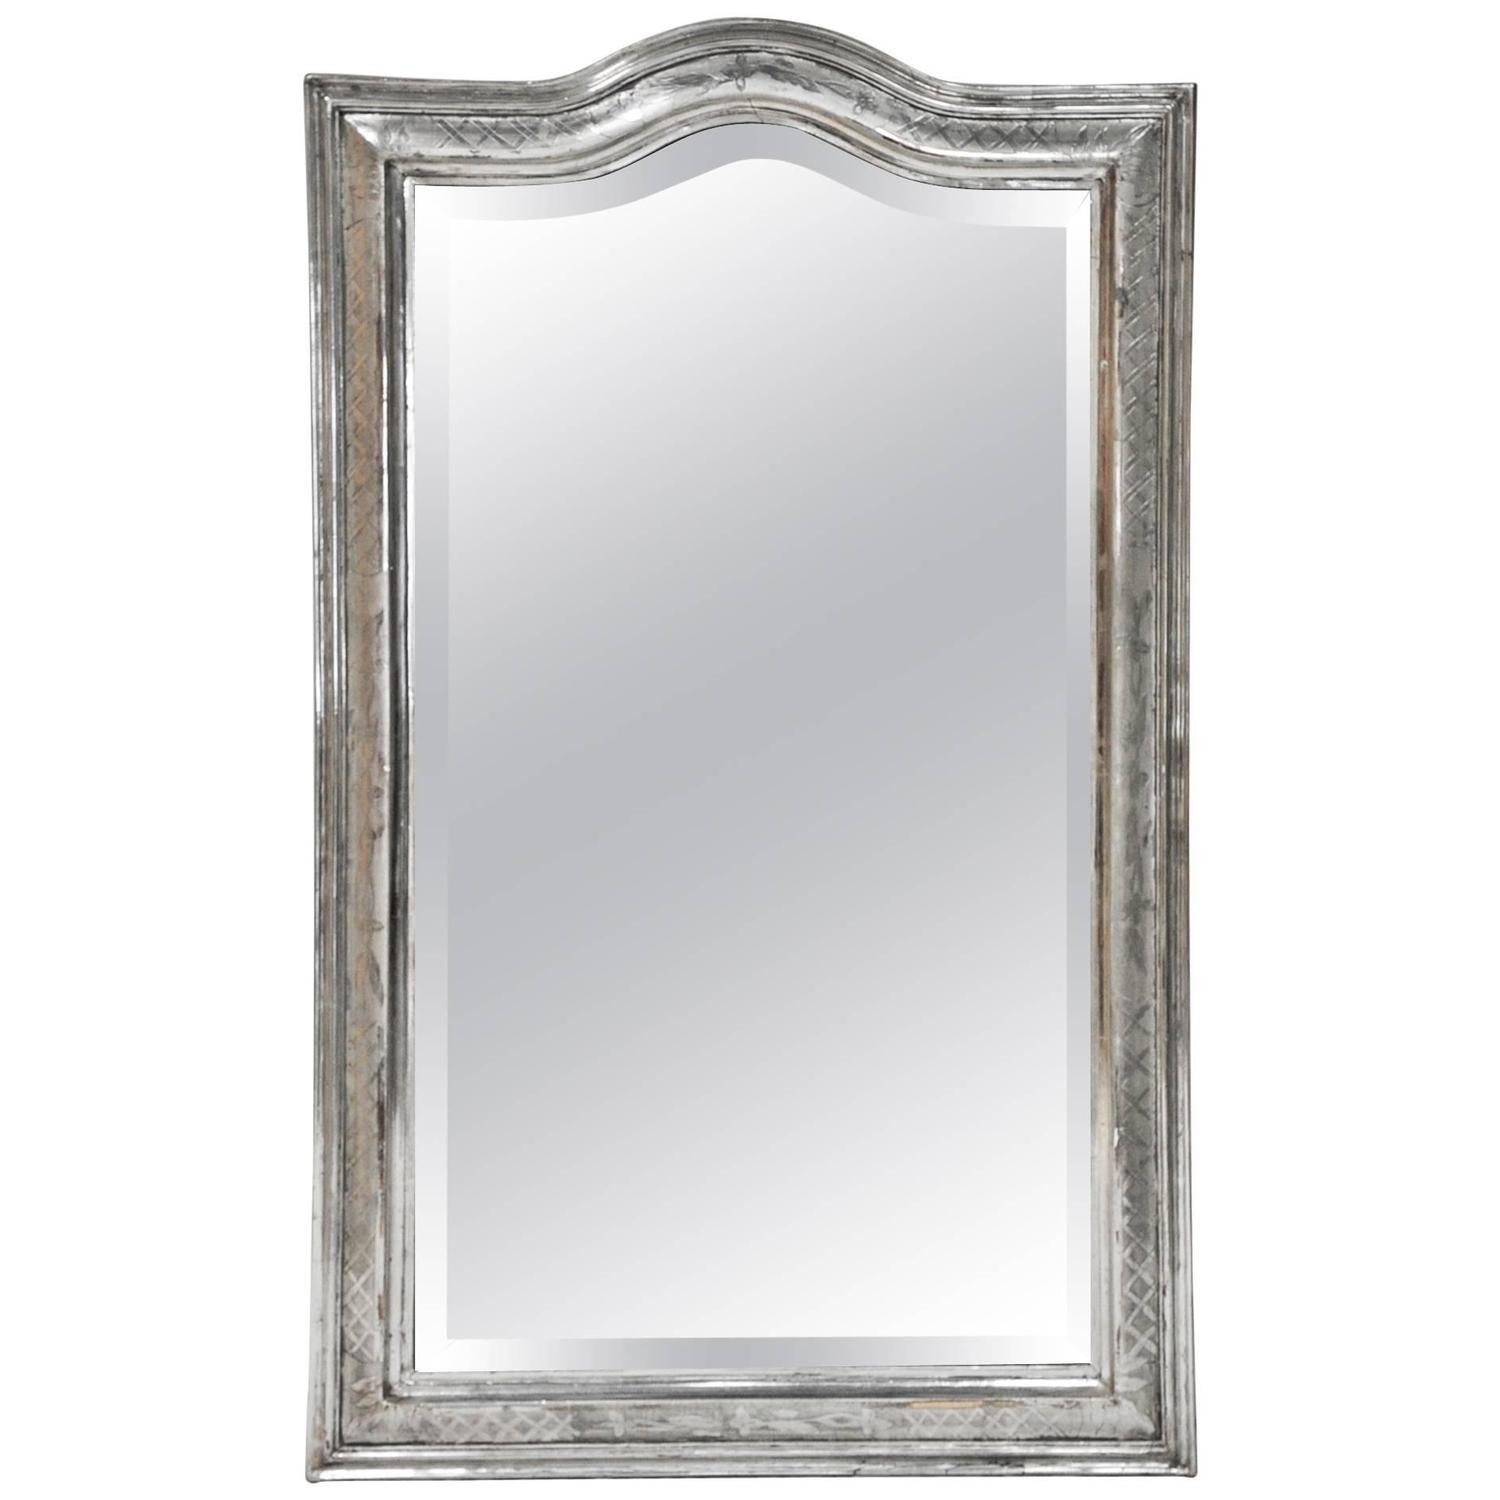 Plaster Mirrors 153 For Sale At 1stdibs Intended For Silver Gilded Mirror (Image 14 of 15)